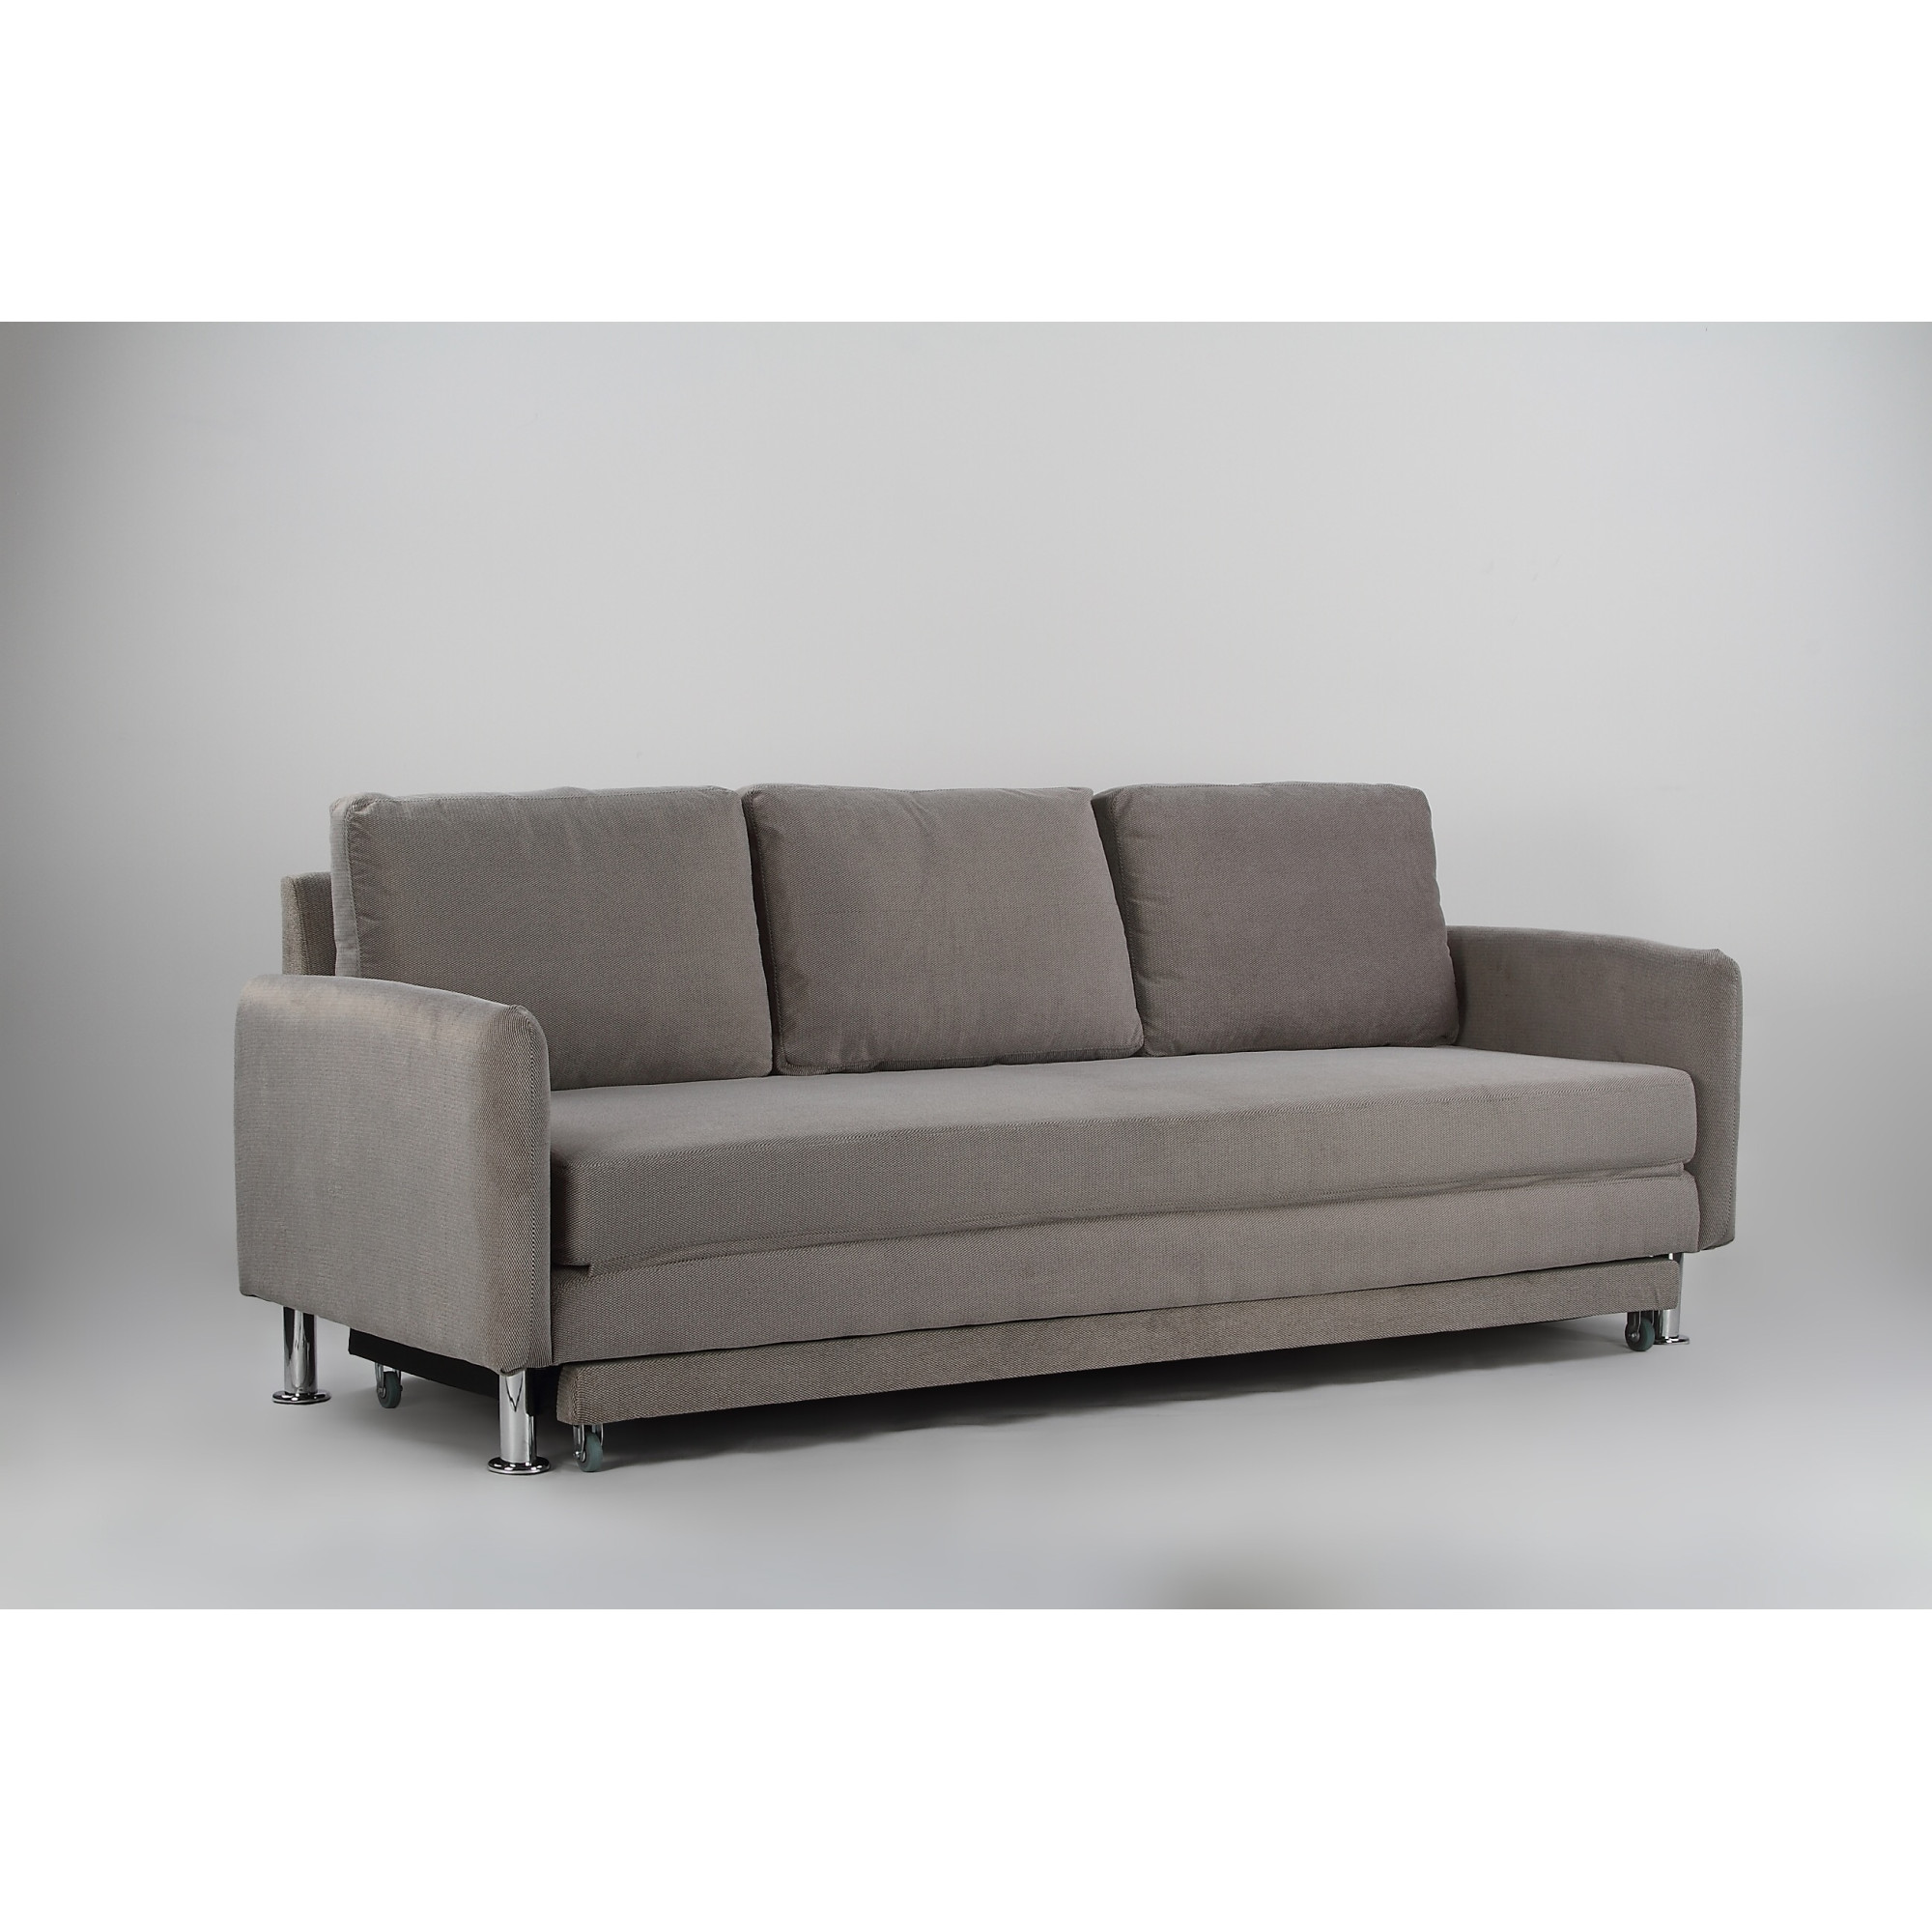 Cozy 3 Seater Pull Out Sofa Bed Grey